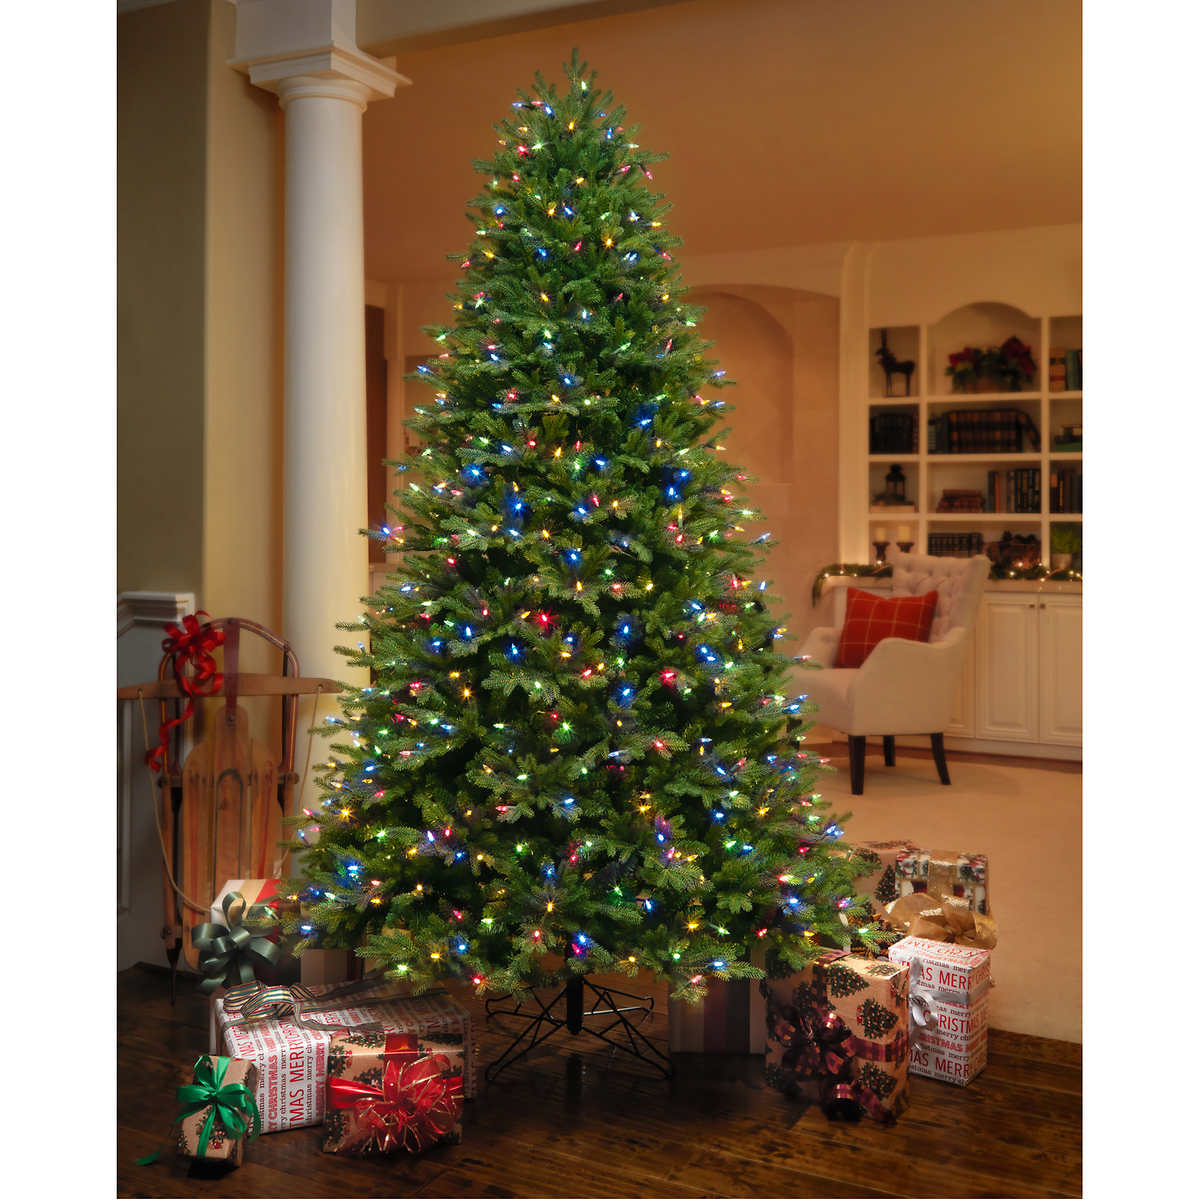 7 5' Artificial Aspen Fir Pre Lit Christmas Tree - Best Deal On Pre Lit Christmas Trees